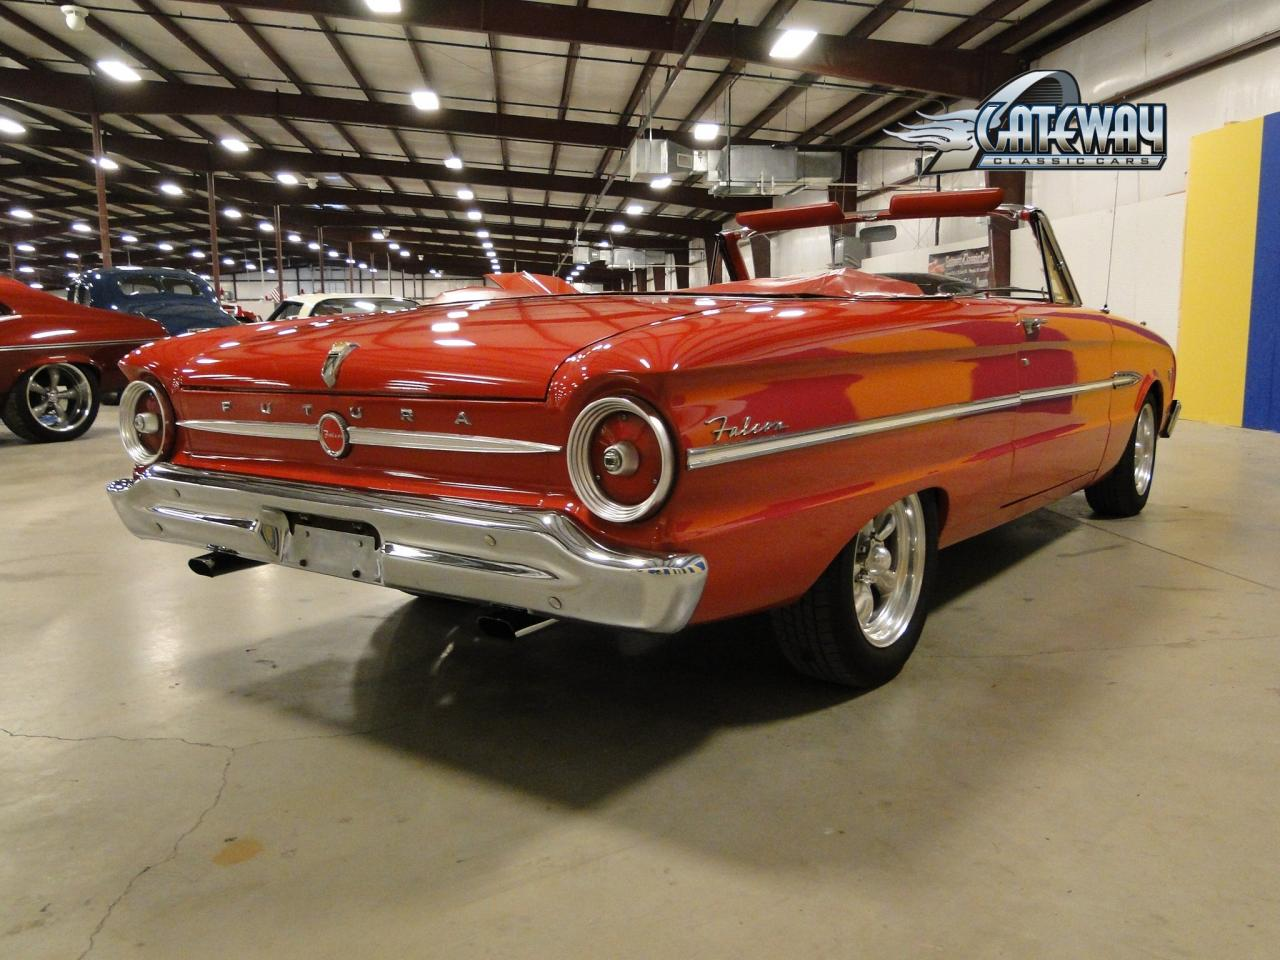 1963 Ford Falcon Sprint Convertible moreover Most Affordable Convertible Cars further 1963 Ford Falcon Convertible Body Gallery 1963 Ford Falcon as well Ford Mustang Mach 1 1969  Code 63C SÅLD  Mel's Garage likewise 1963 Ford Falcon Futura Convertible For Sale. on 1963 ford falcon convertible